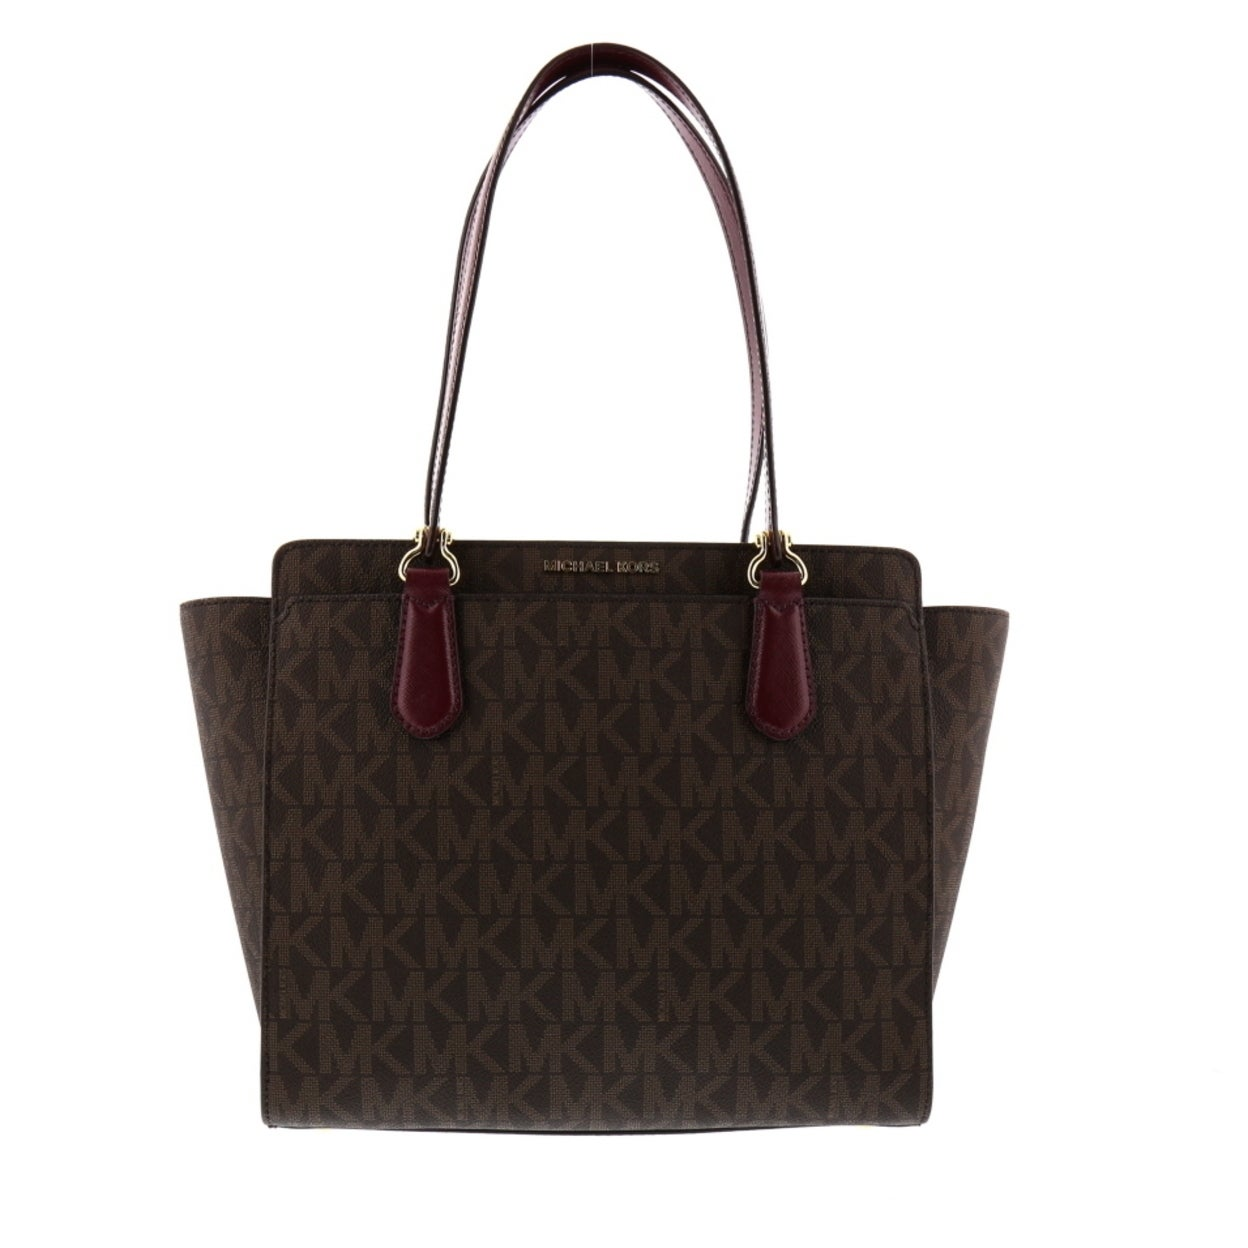 83616c662a1be5 Shop MICHAEL Michael Kors Dee Dee Signature Medium Tote - Free Shipping  Today - Overstock - 23488765